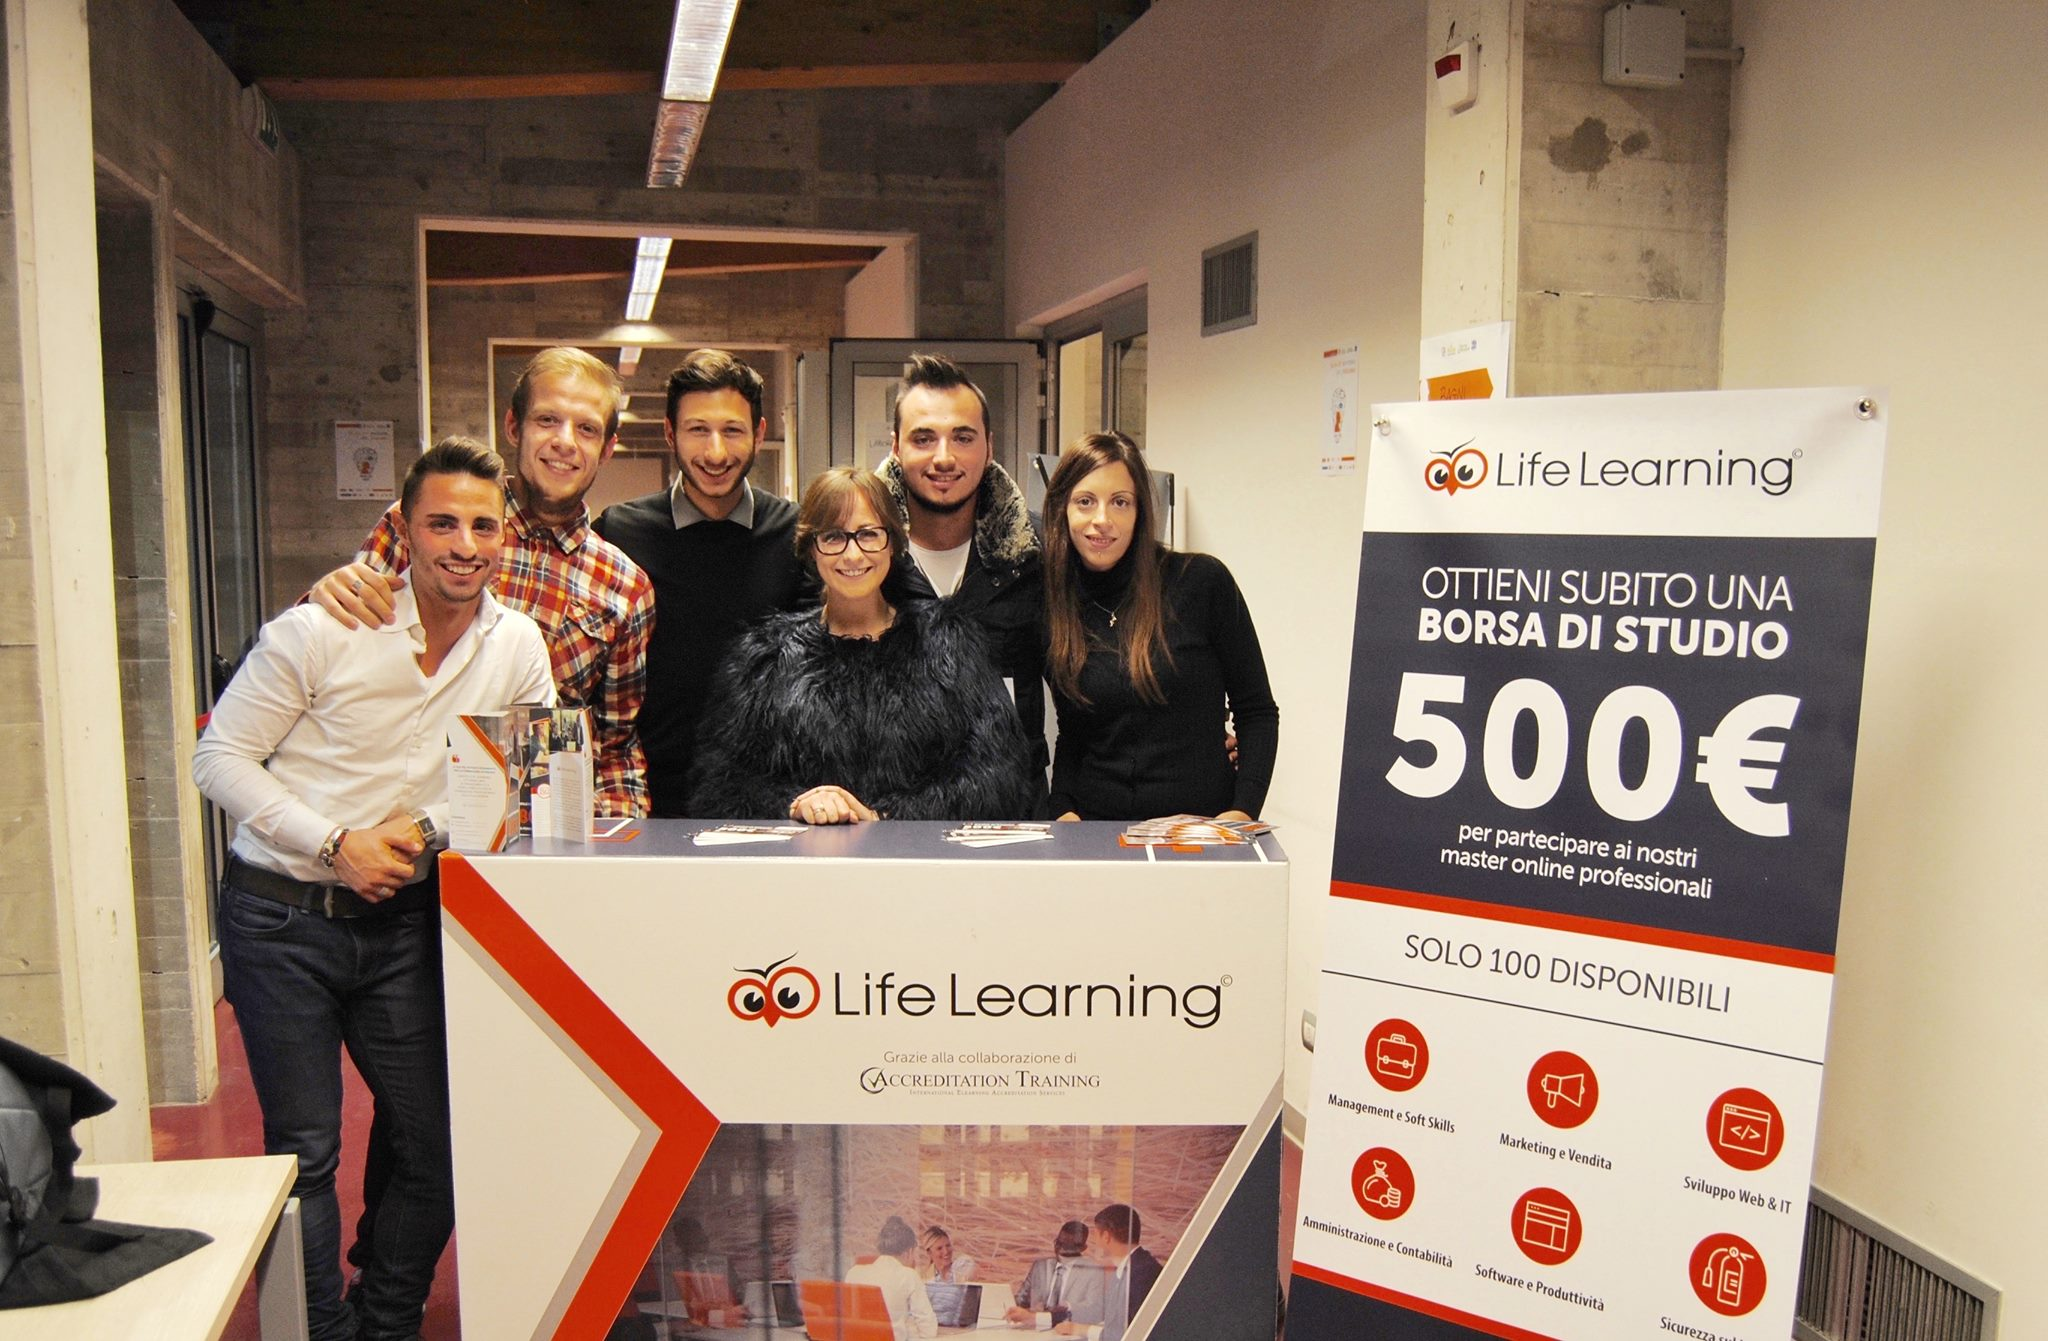 Life Learning la piattaforma edu-tech